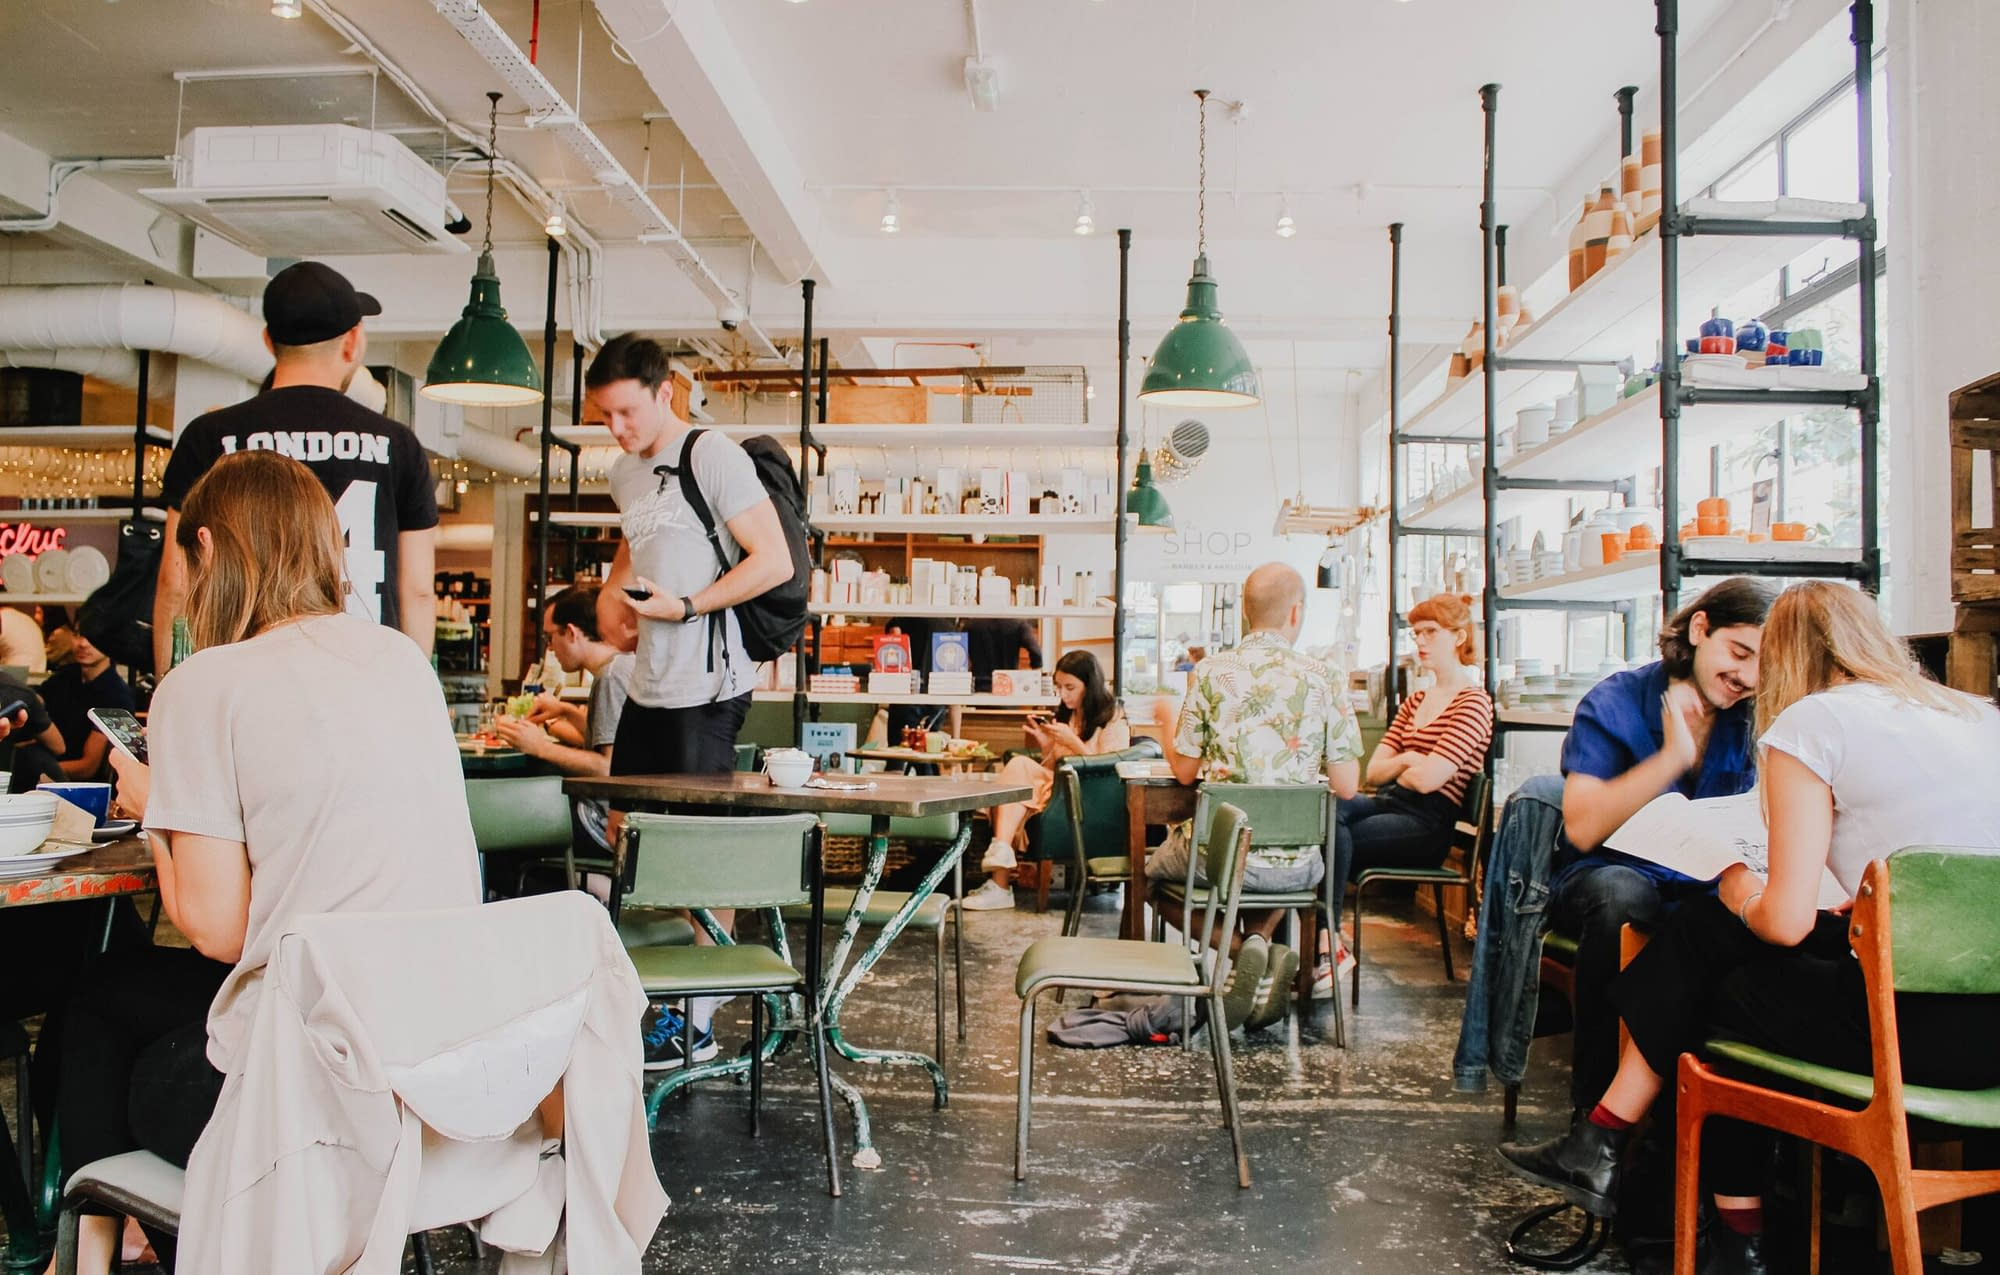 How to Choose? Coworking Spaces vs Cafes vs WFH